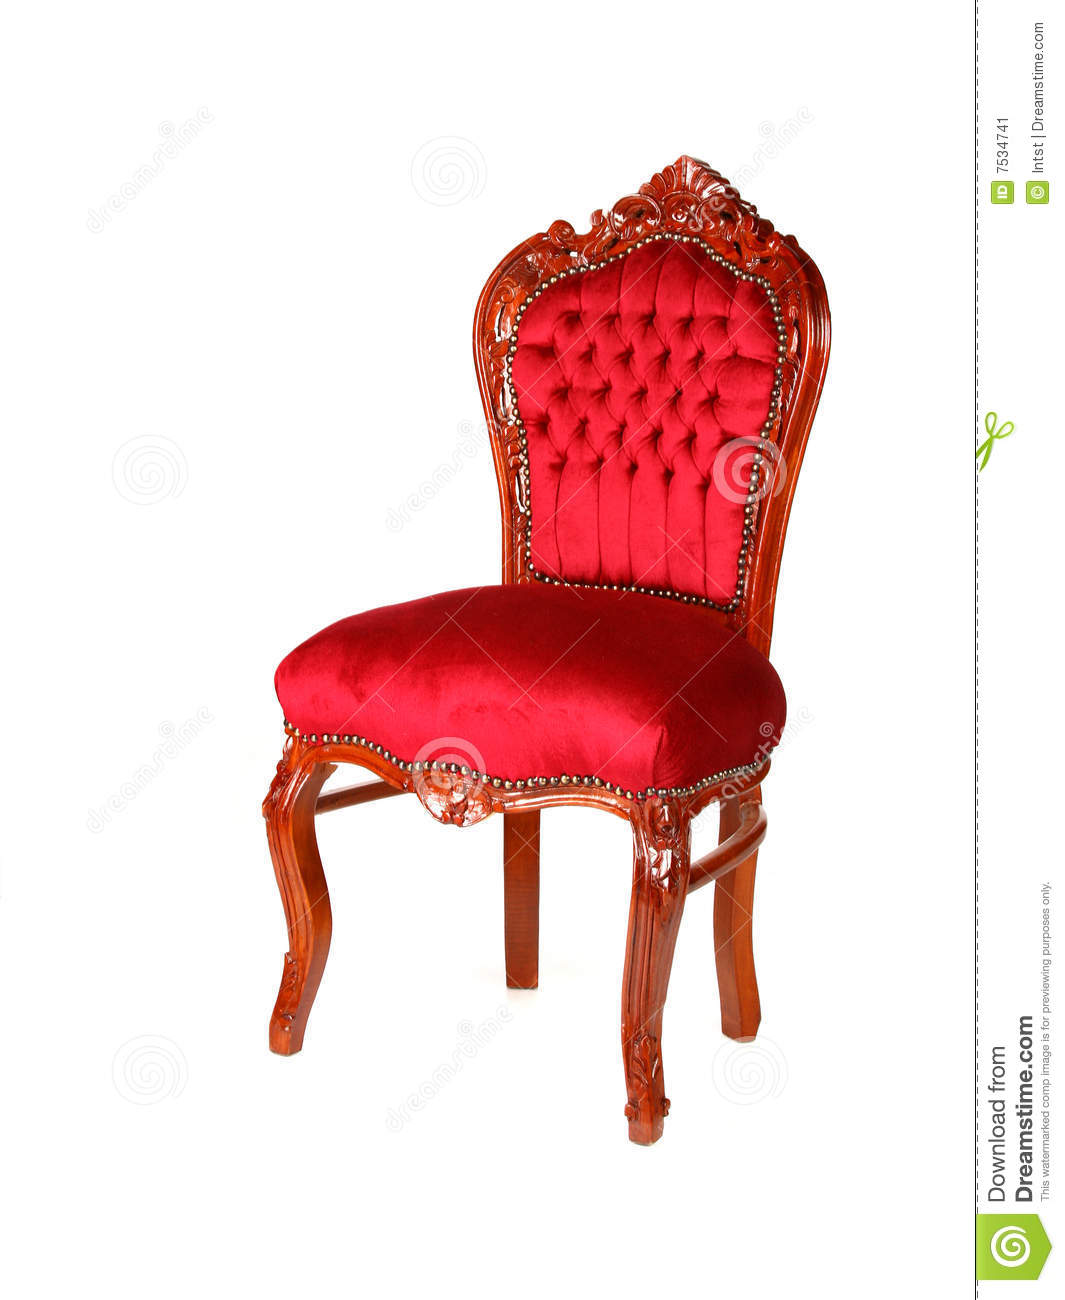 stool chair red the vacant poem old-style velvet stock image - image: 7534741